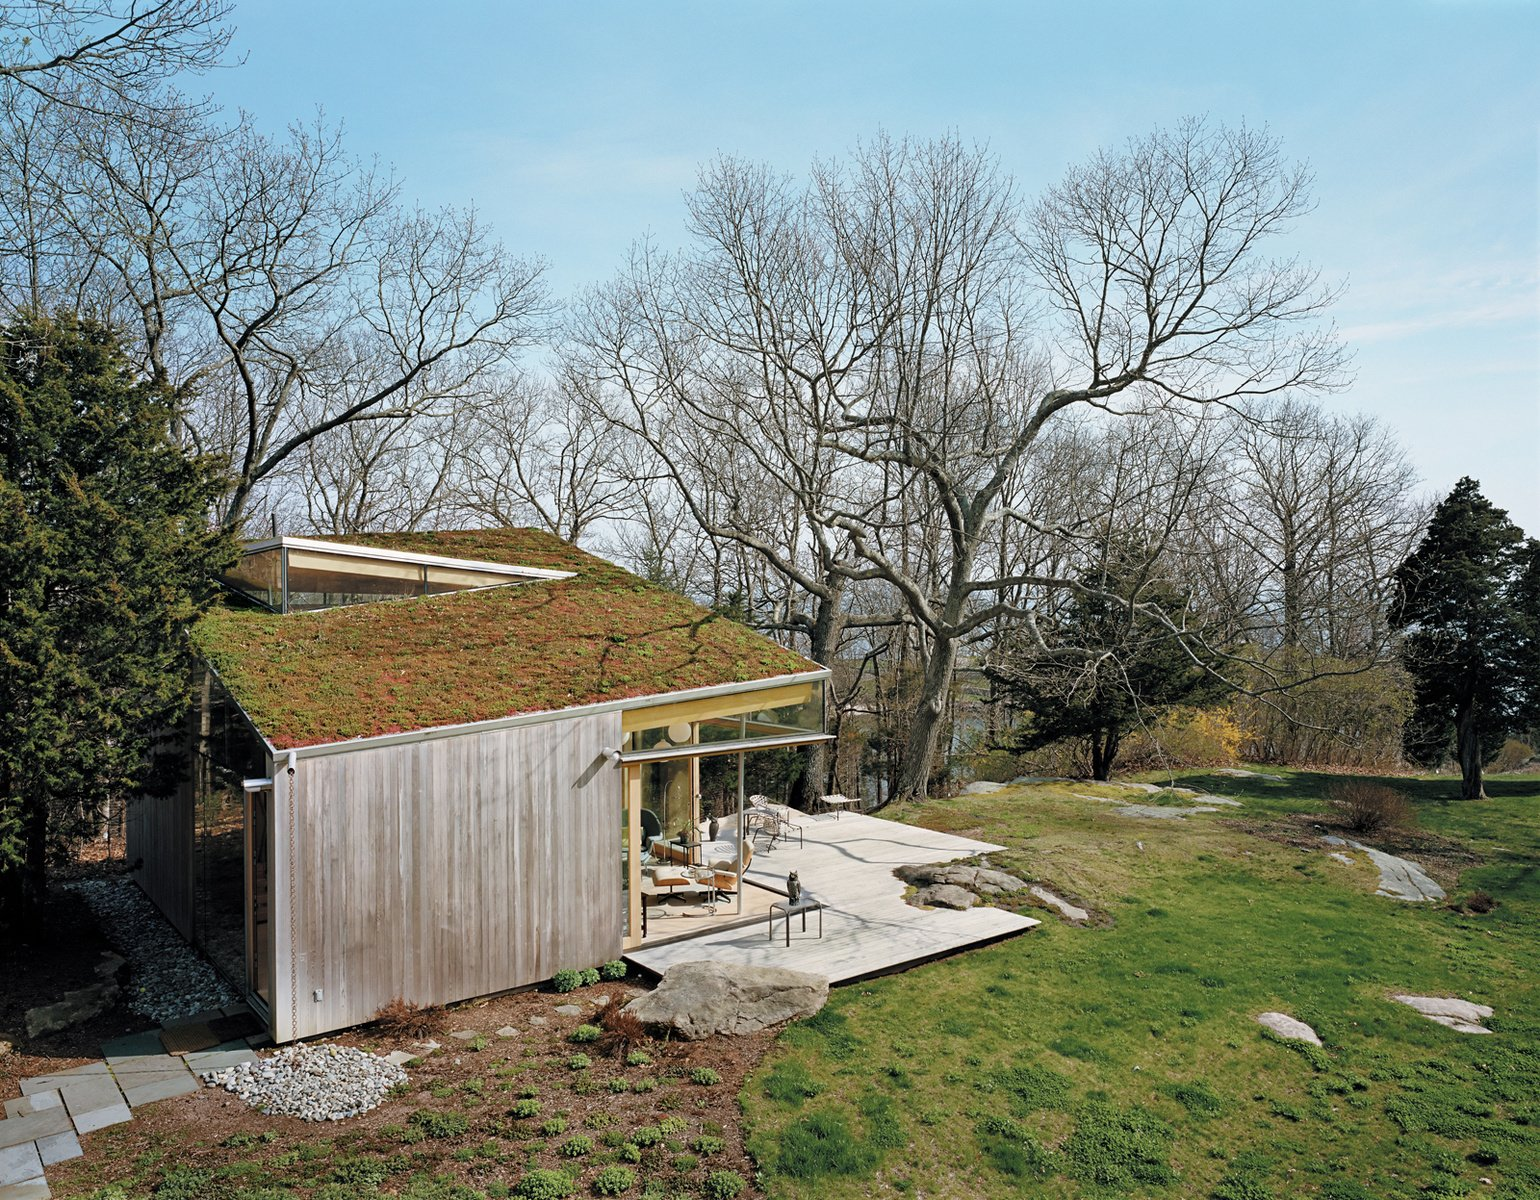 Green Roof Escapes Outside Of Cities By Luke Hopping From